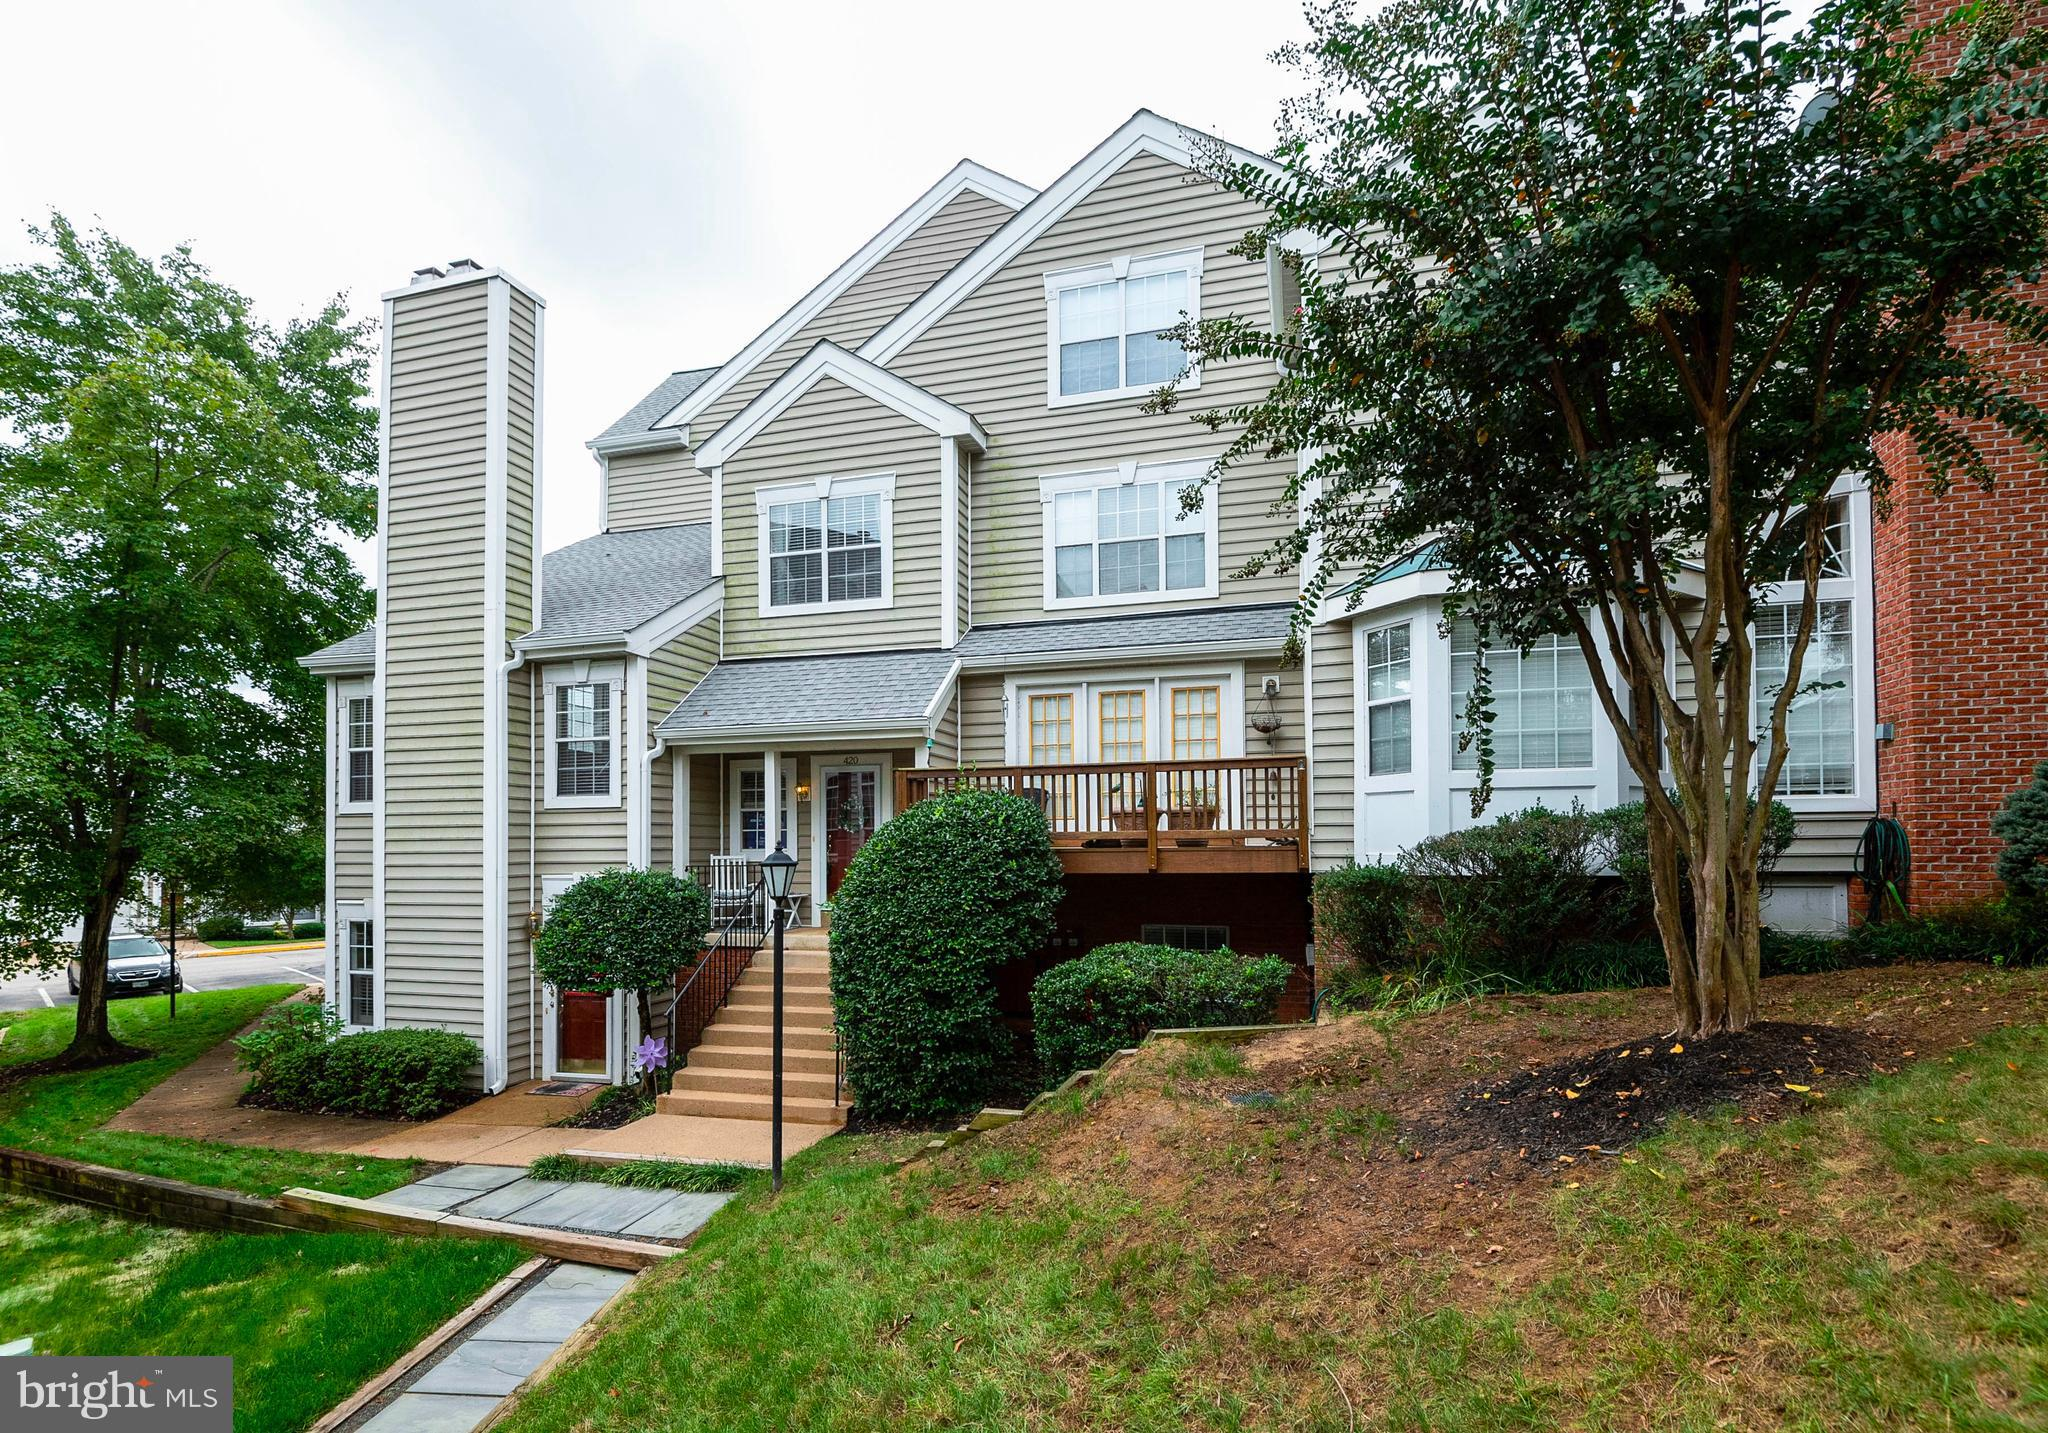 Located in scenic Historic Occoquan, this beautifully maintained 2 -level condo boasts gleaming hardwoods & bright, natural light through out. Brand new carpet on upper level. Each bedroom has it's own bathroom! Newly remodeled master bath. Newer hot water heater, AC, and furnace. This one surely will not disappoint.